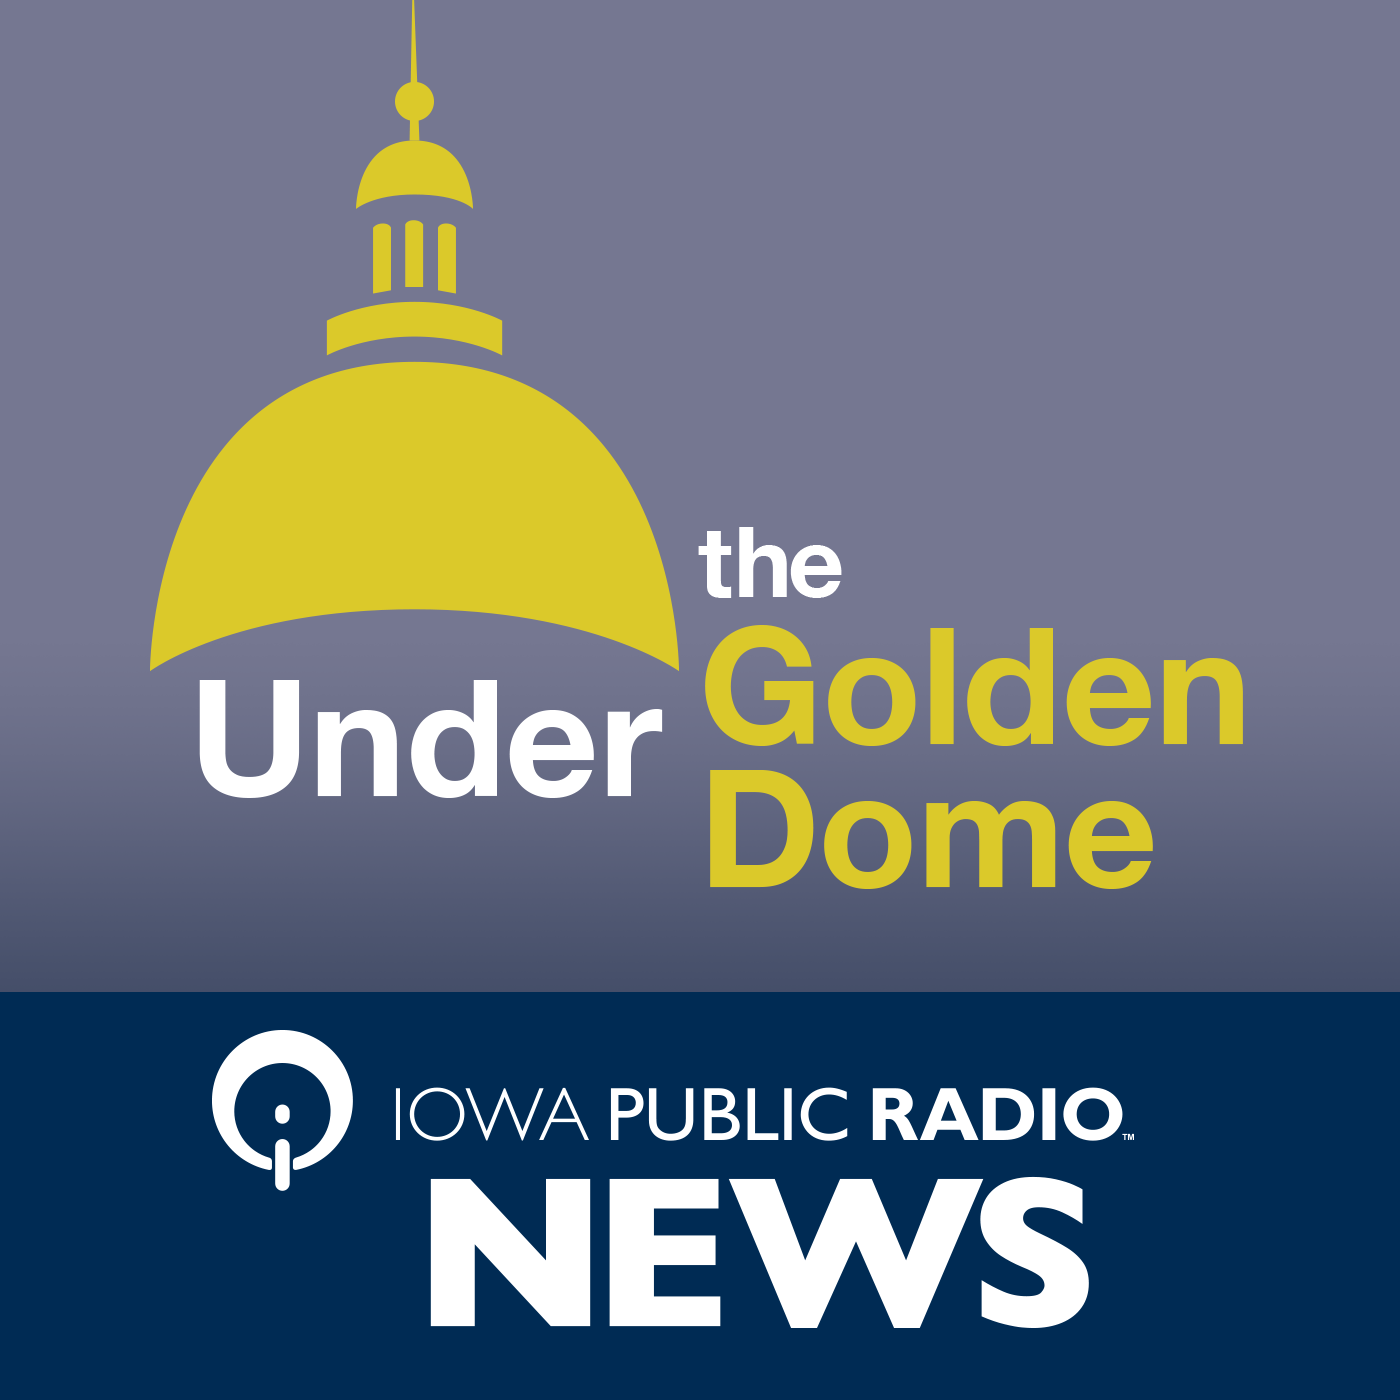 Under the Golden Dome | Iowa Public Radio